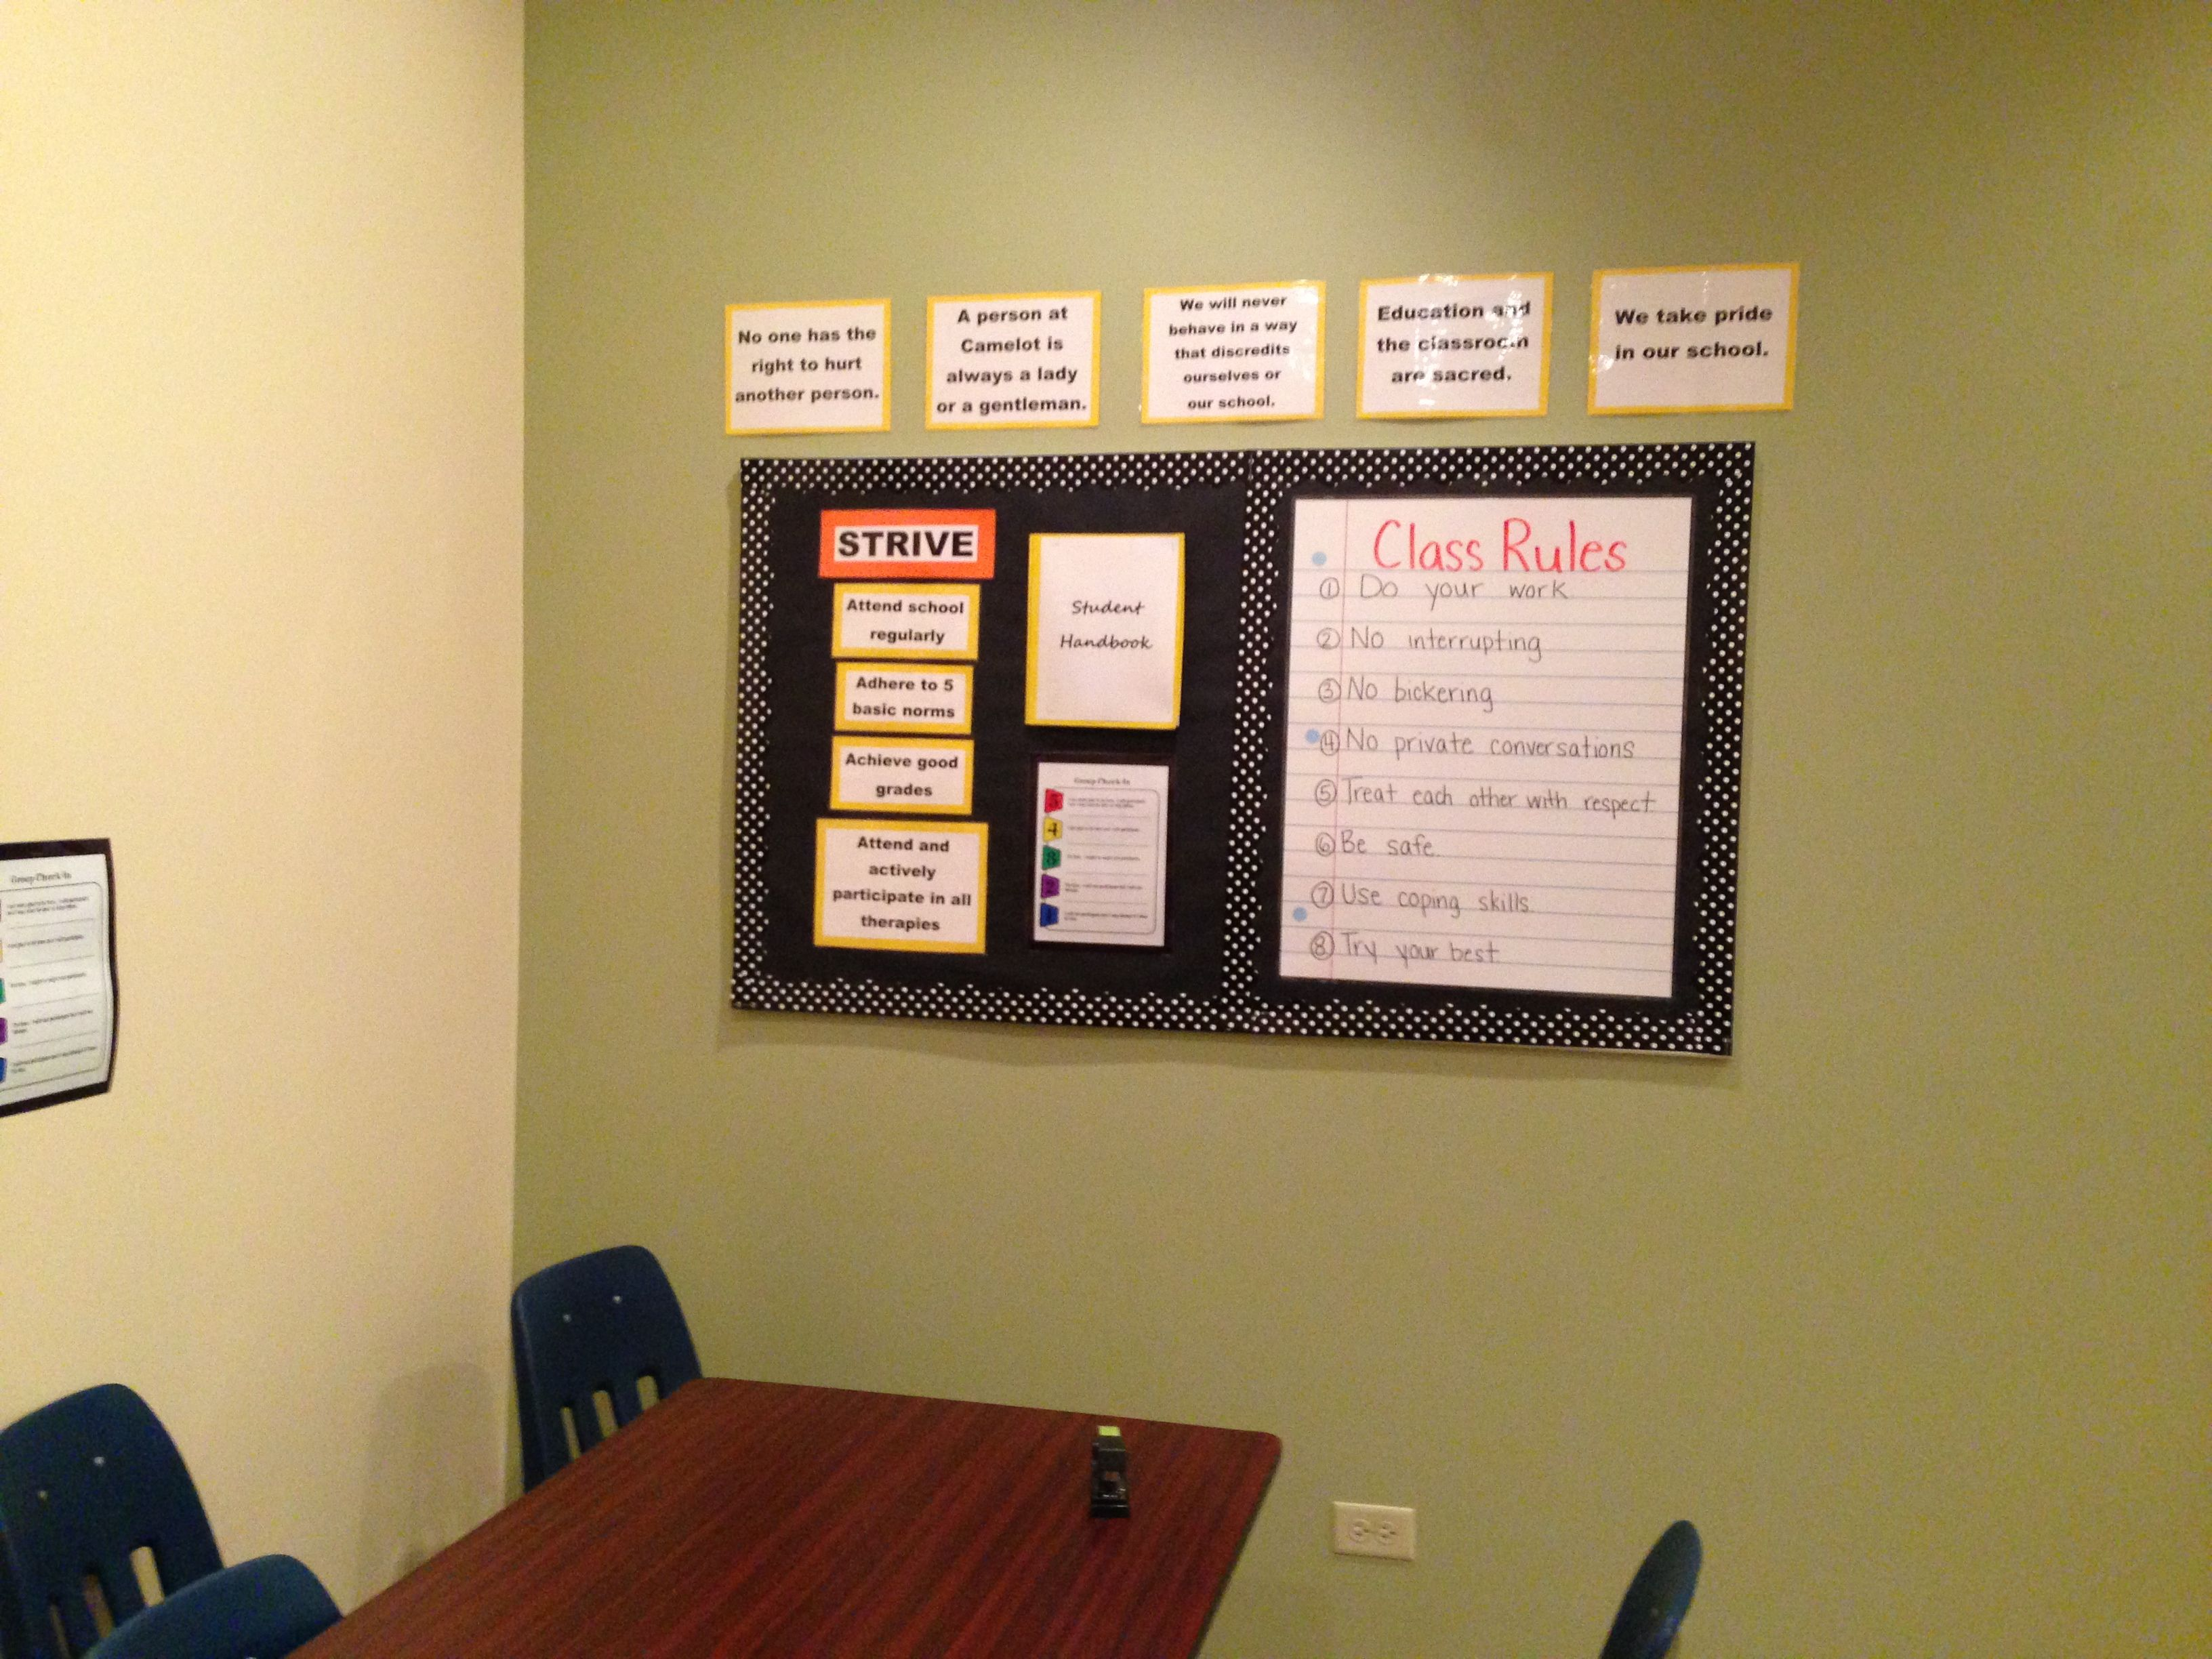 Bulletin Board With Rules And Procedures